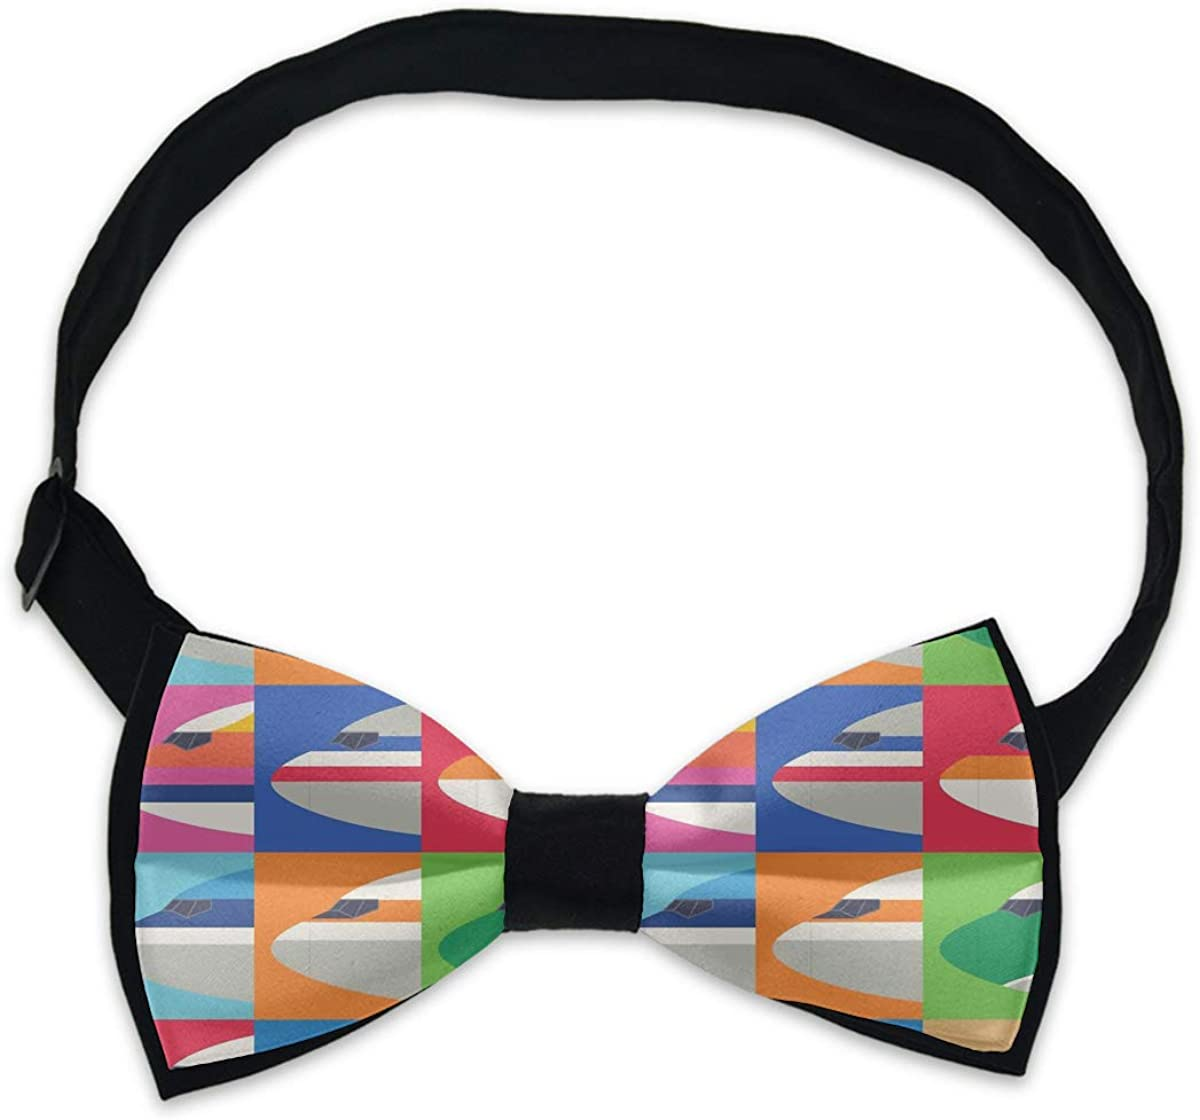 Creative Bow Tie Gift, Casual And Formal Bow Tie for Business Wedding Party